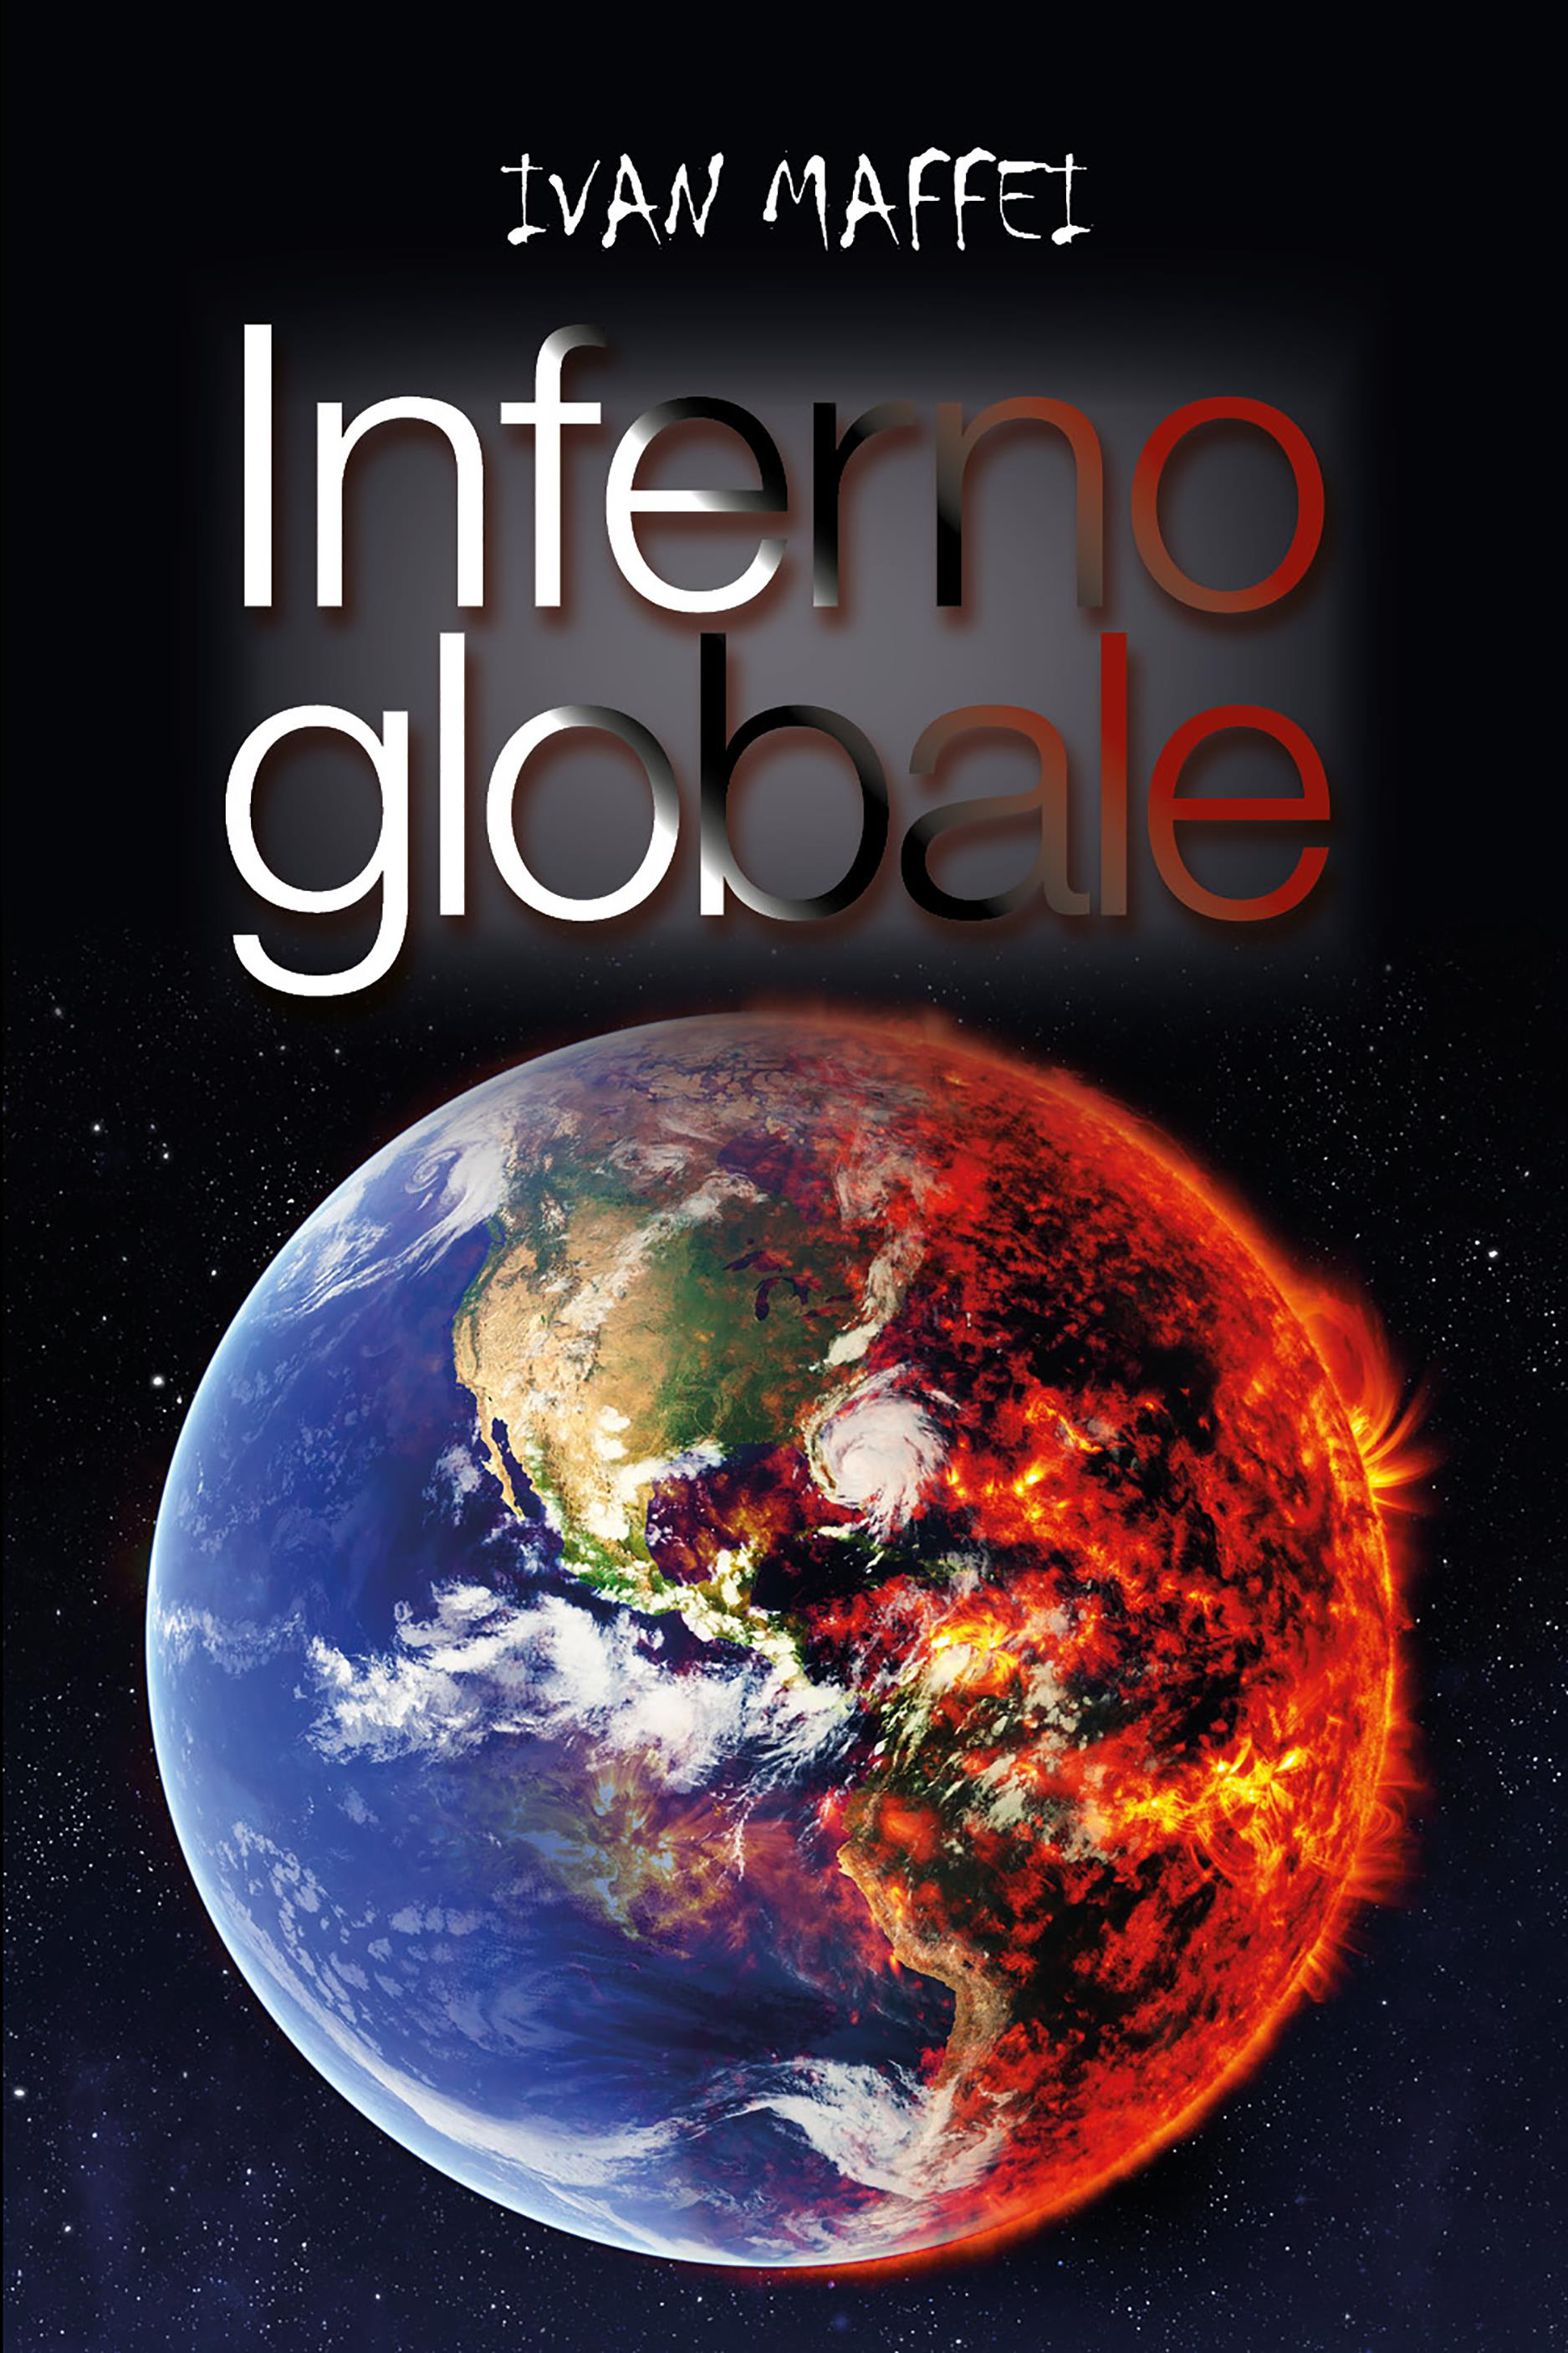 Inferno globale